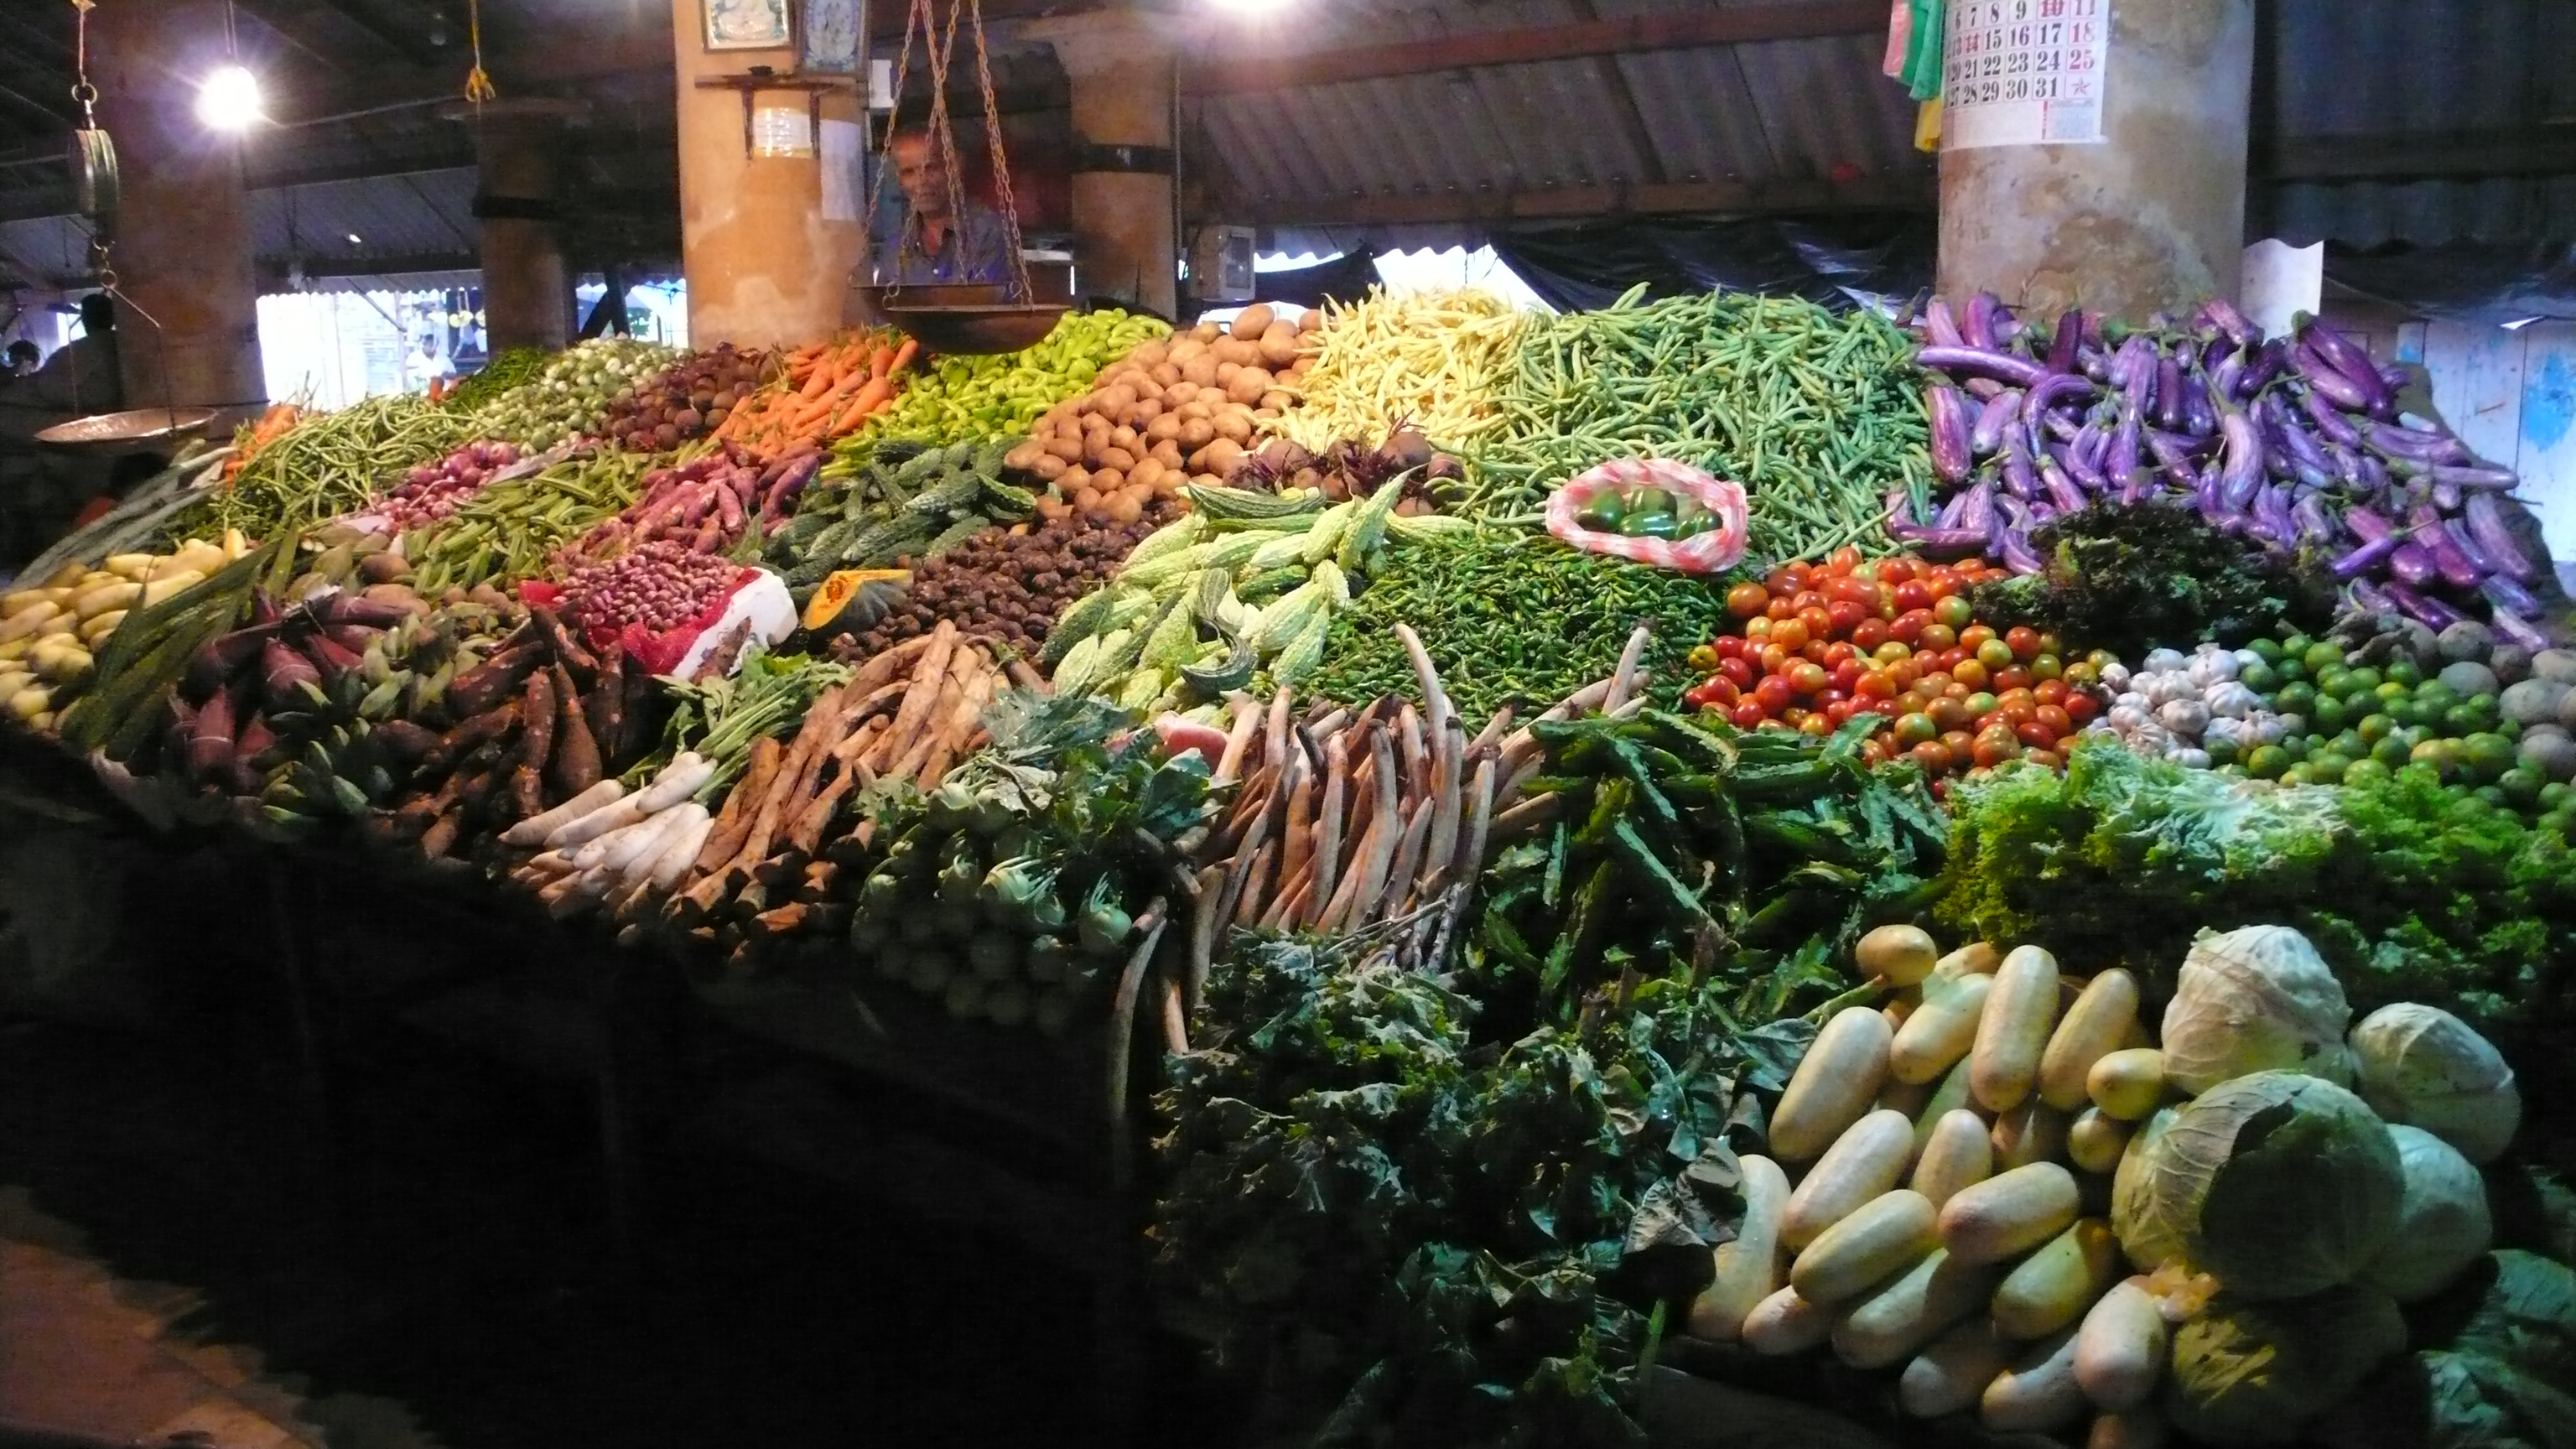 http://upload.wikimedia.org/wikipedia/commons/2/28/Sri_Lanka_galle_Vegetable_Stand.jpg